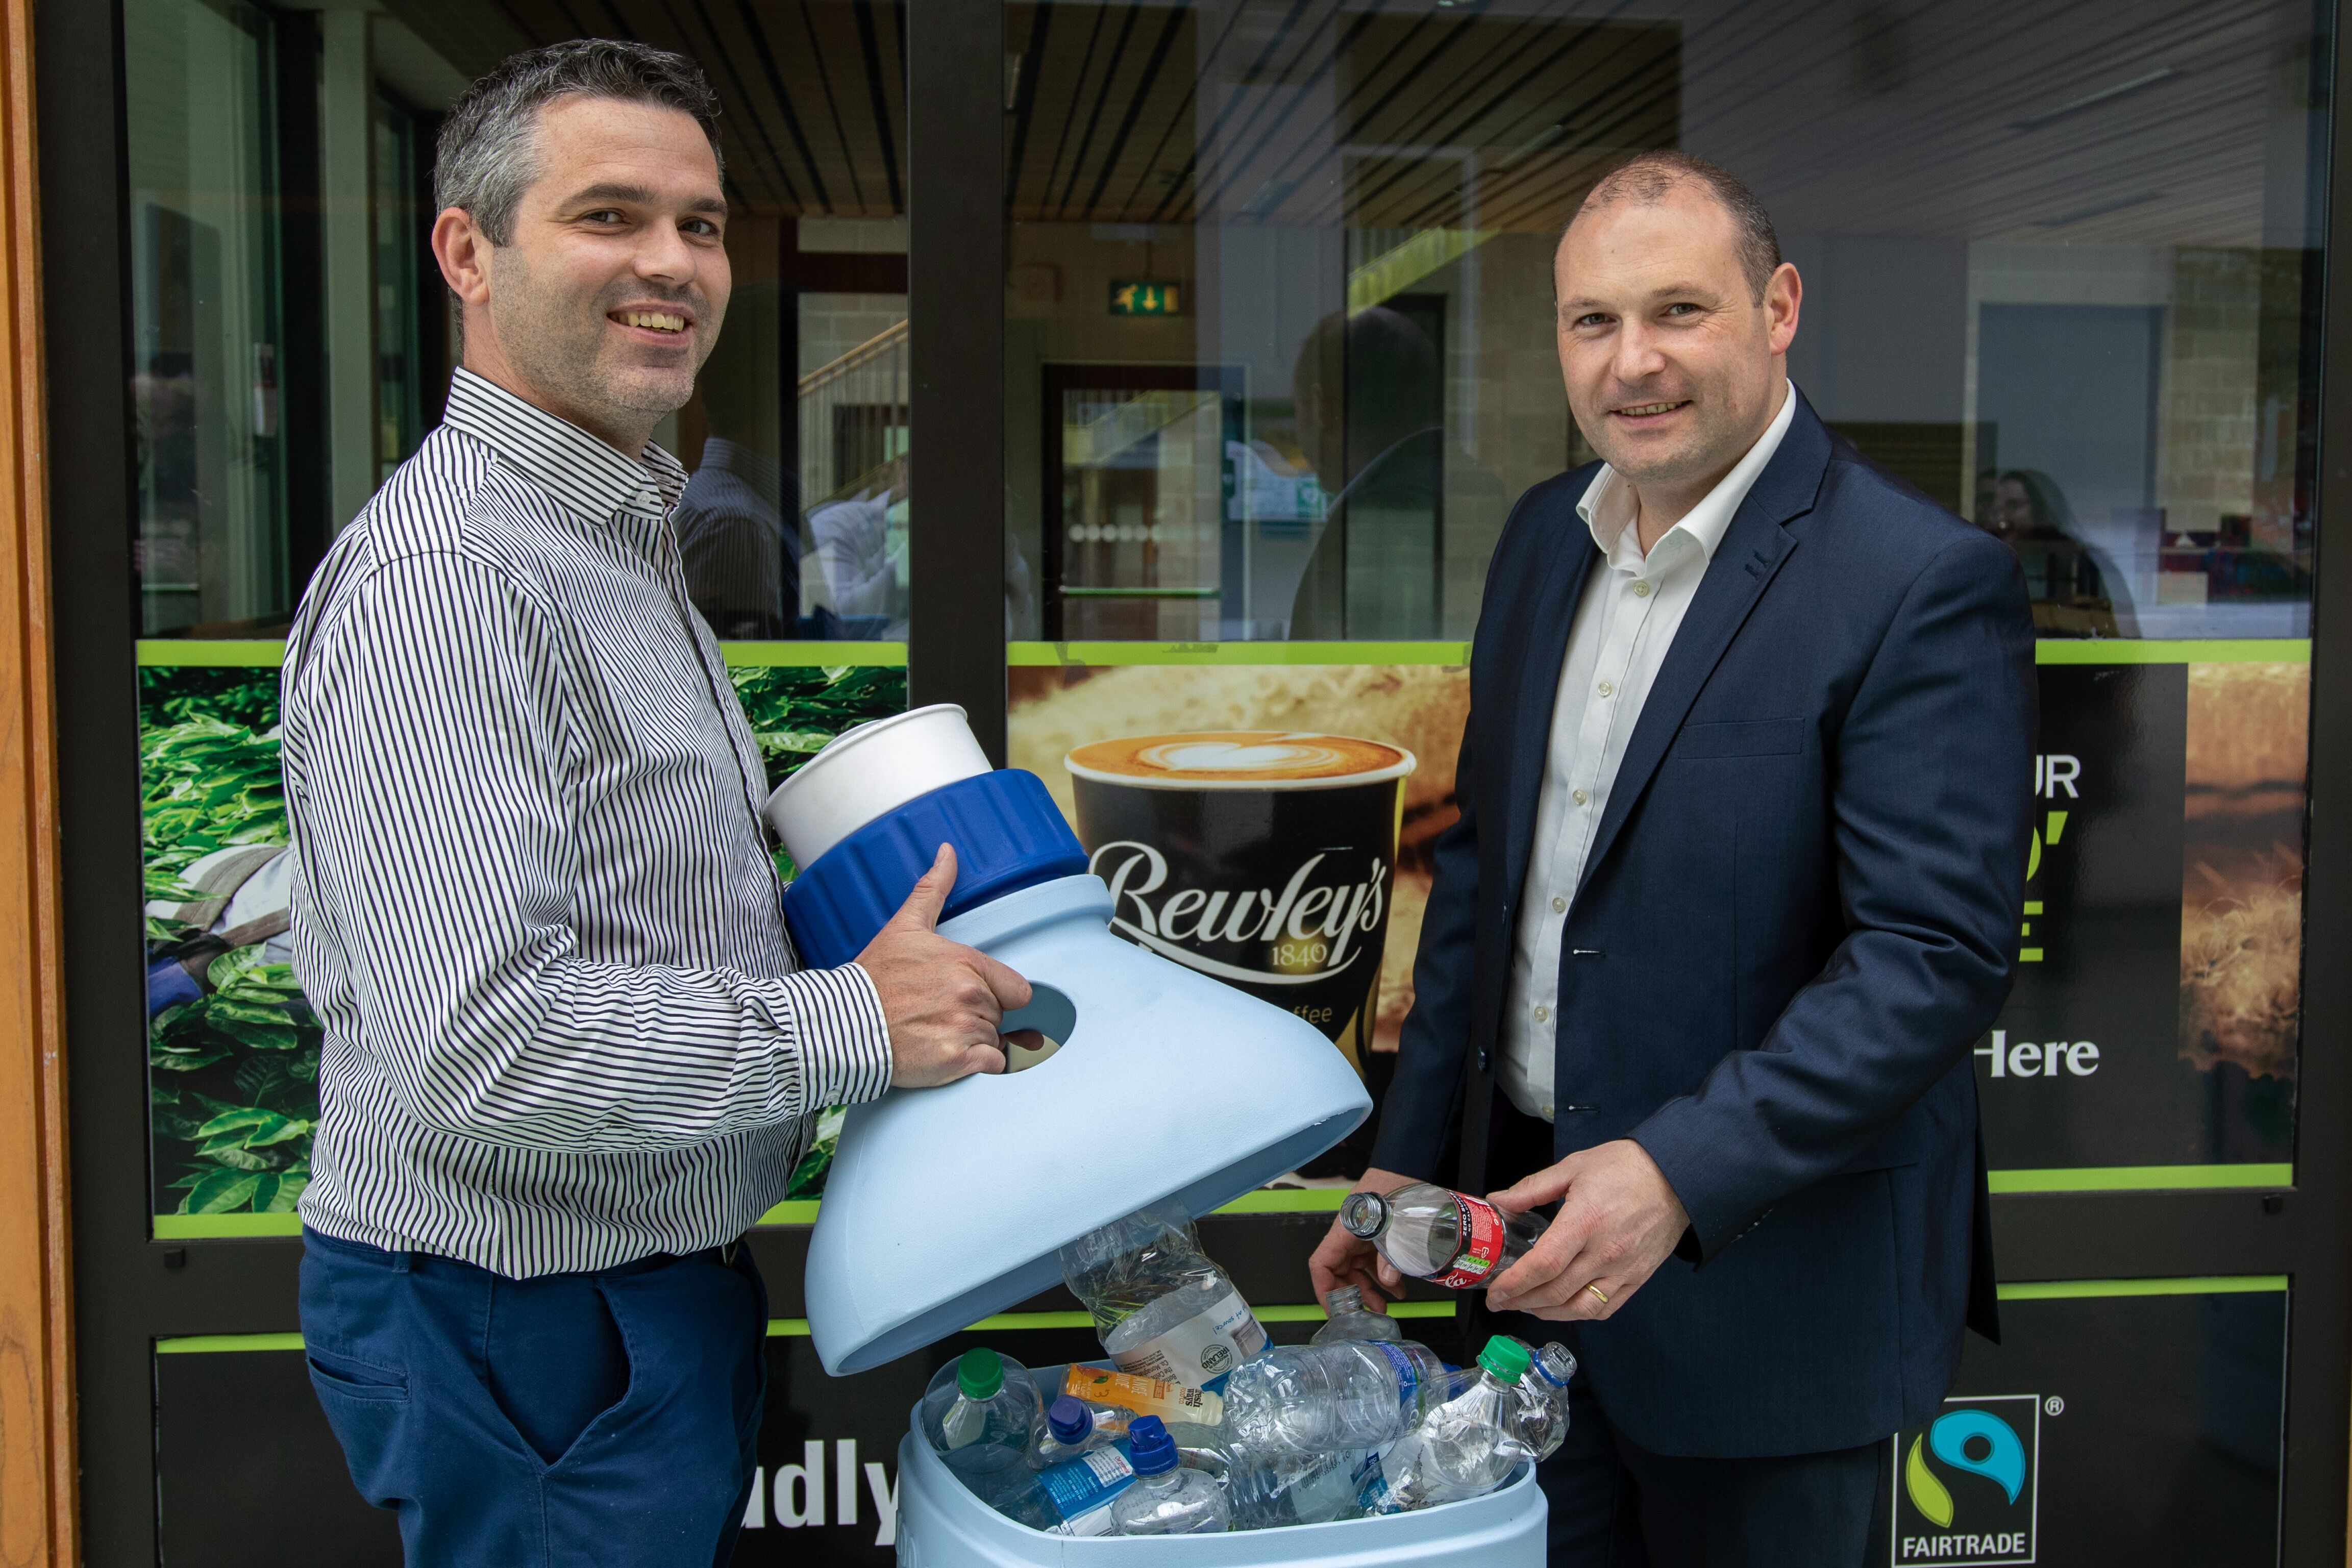 Dr Declan Devine, Director of the Materials Research Institute, with Dr Noel Gately, APT Centre Manager posing for the 'Banking on Bottles' initiative